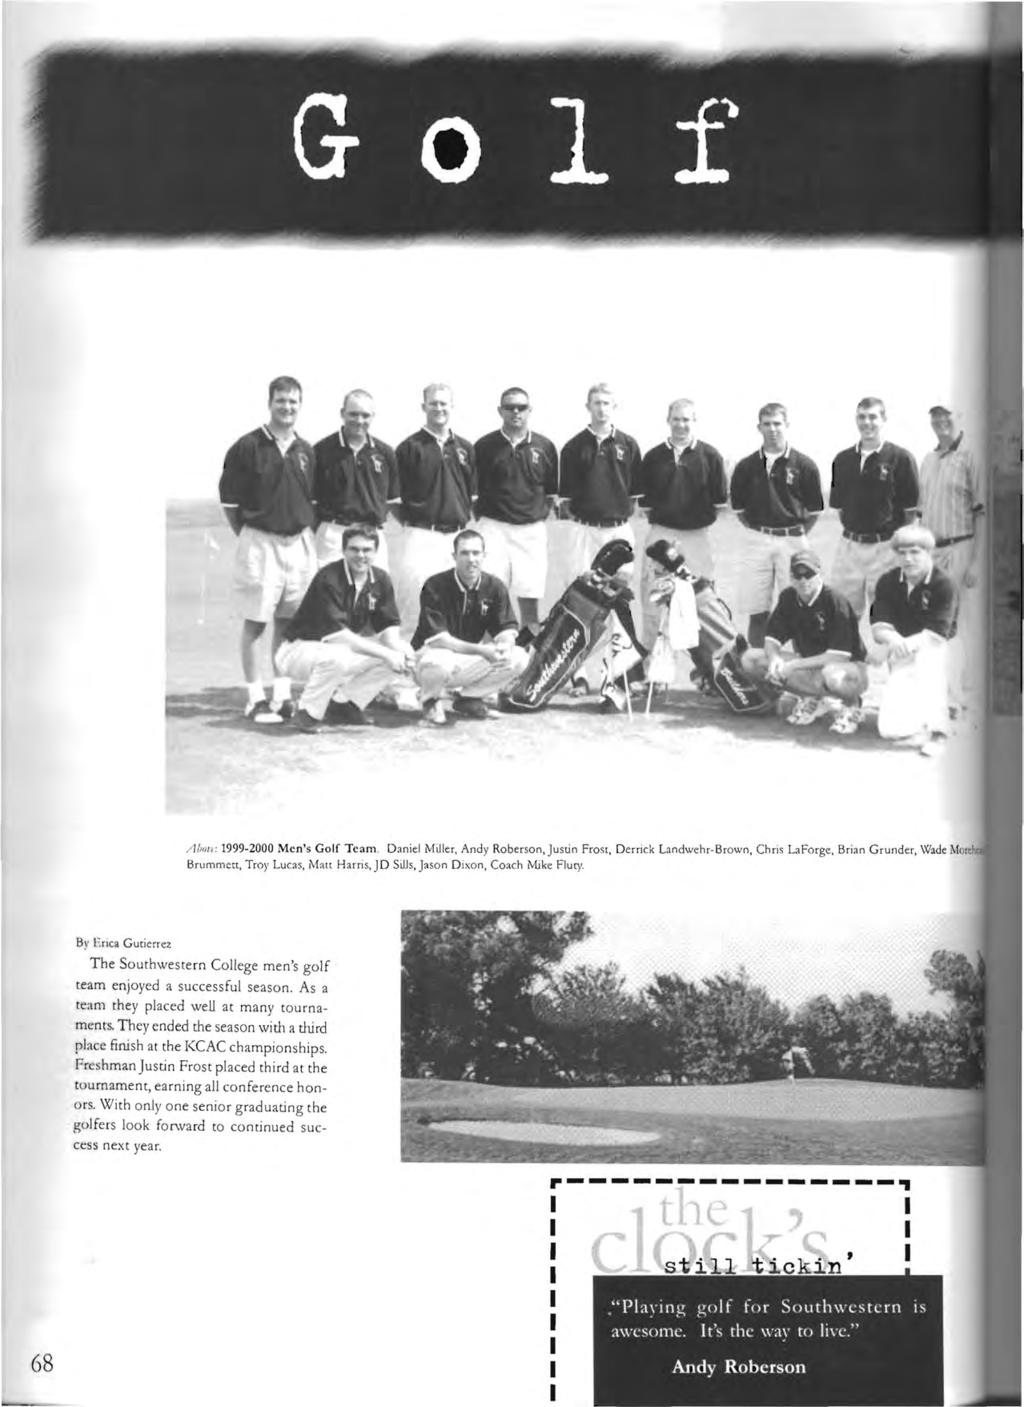 / lbn/.'( : 1999 2000 Men's Golf Team.